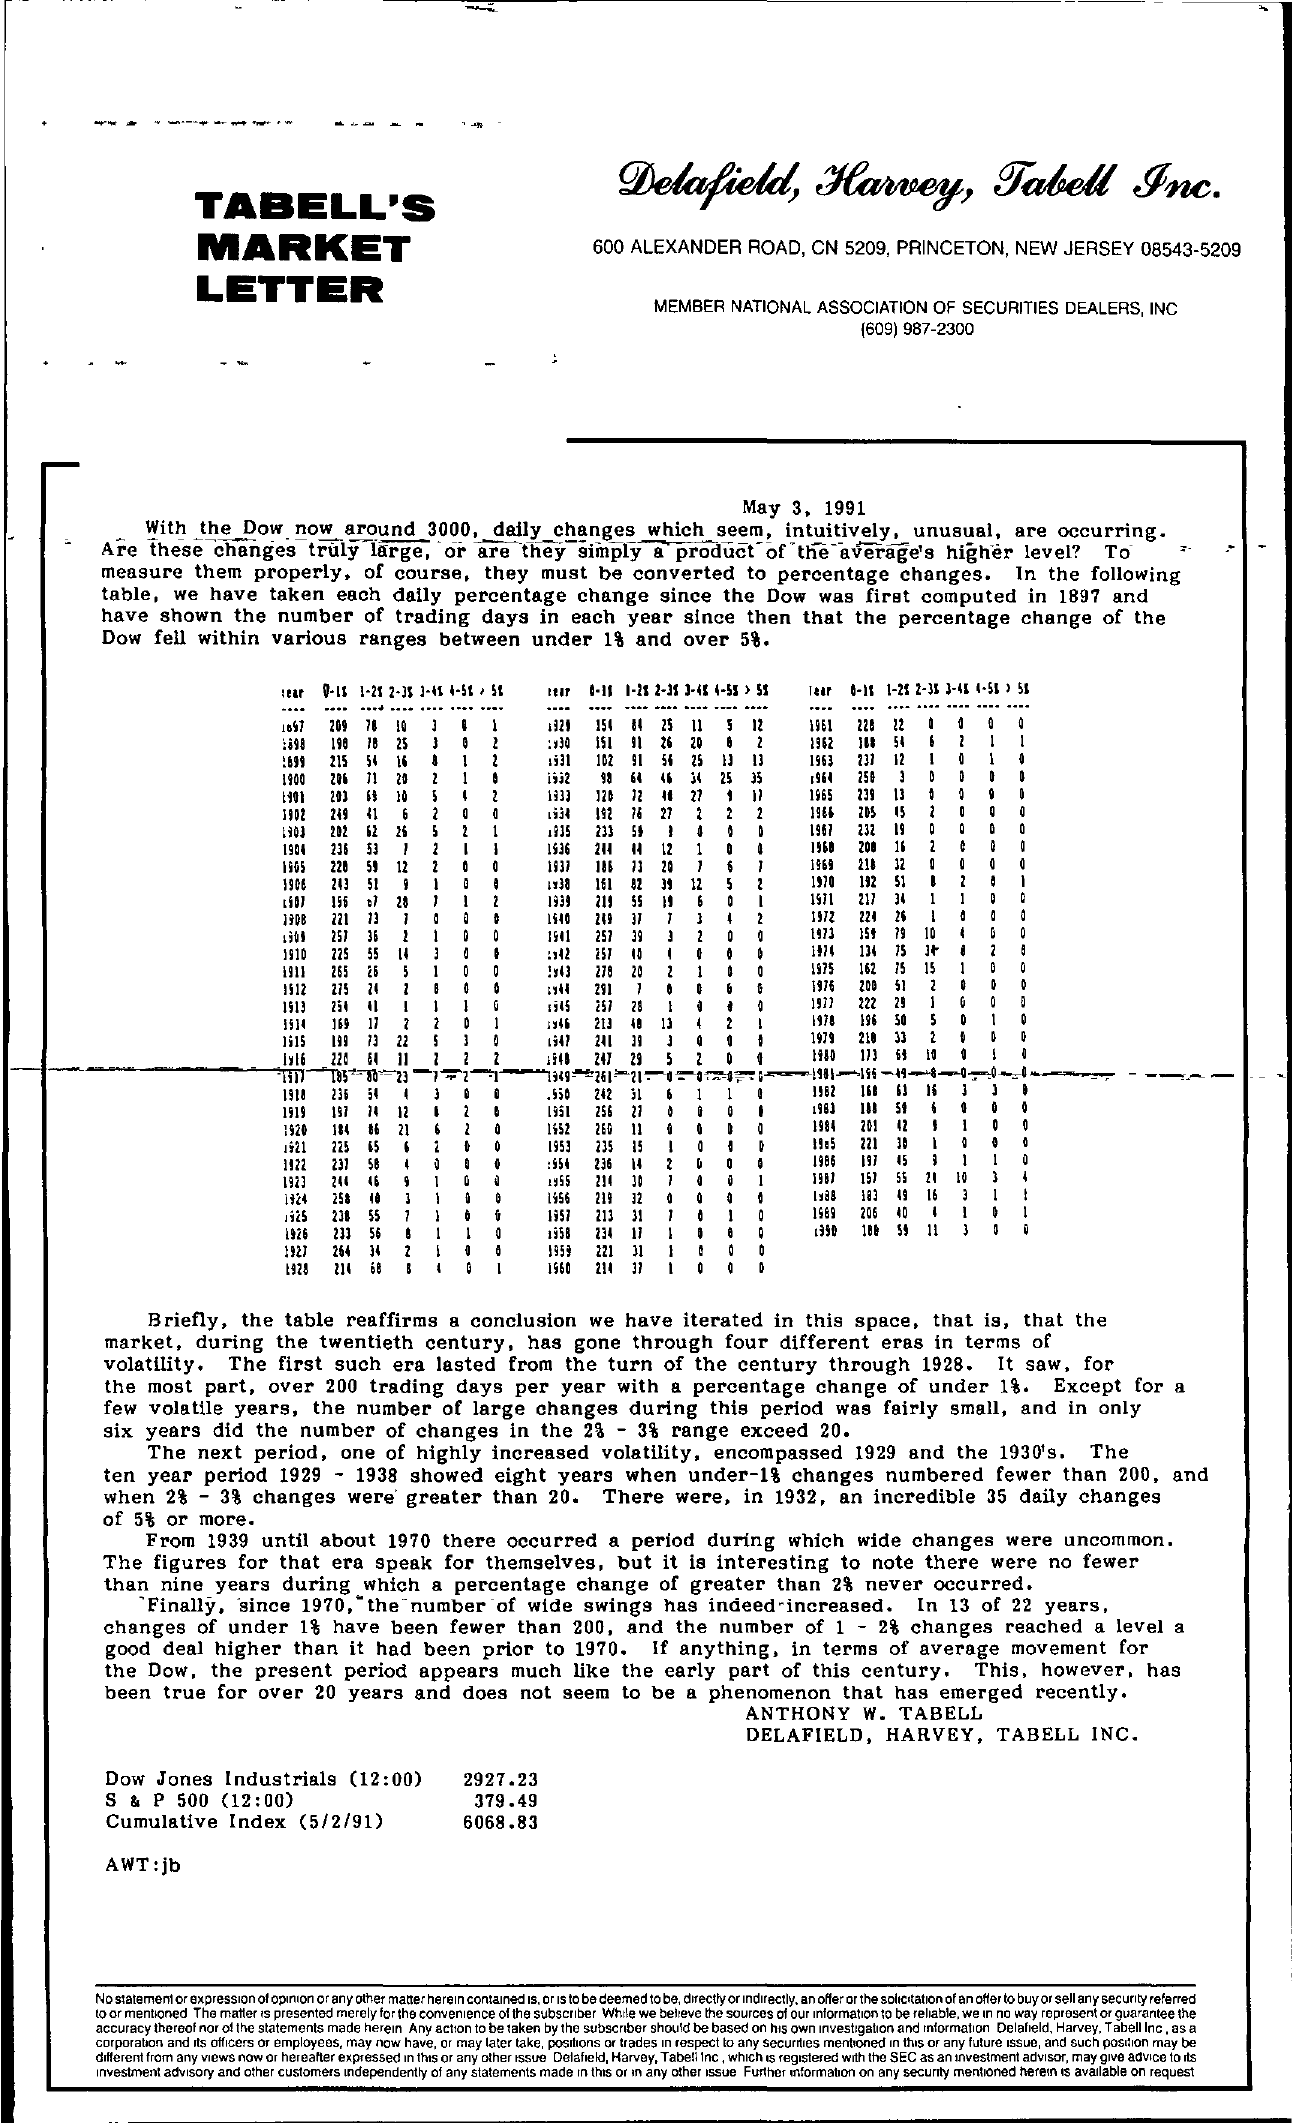 Tabell's Market Letter - May 03, 1991